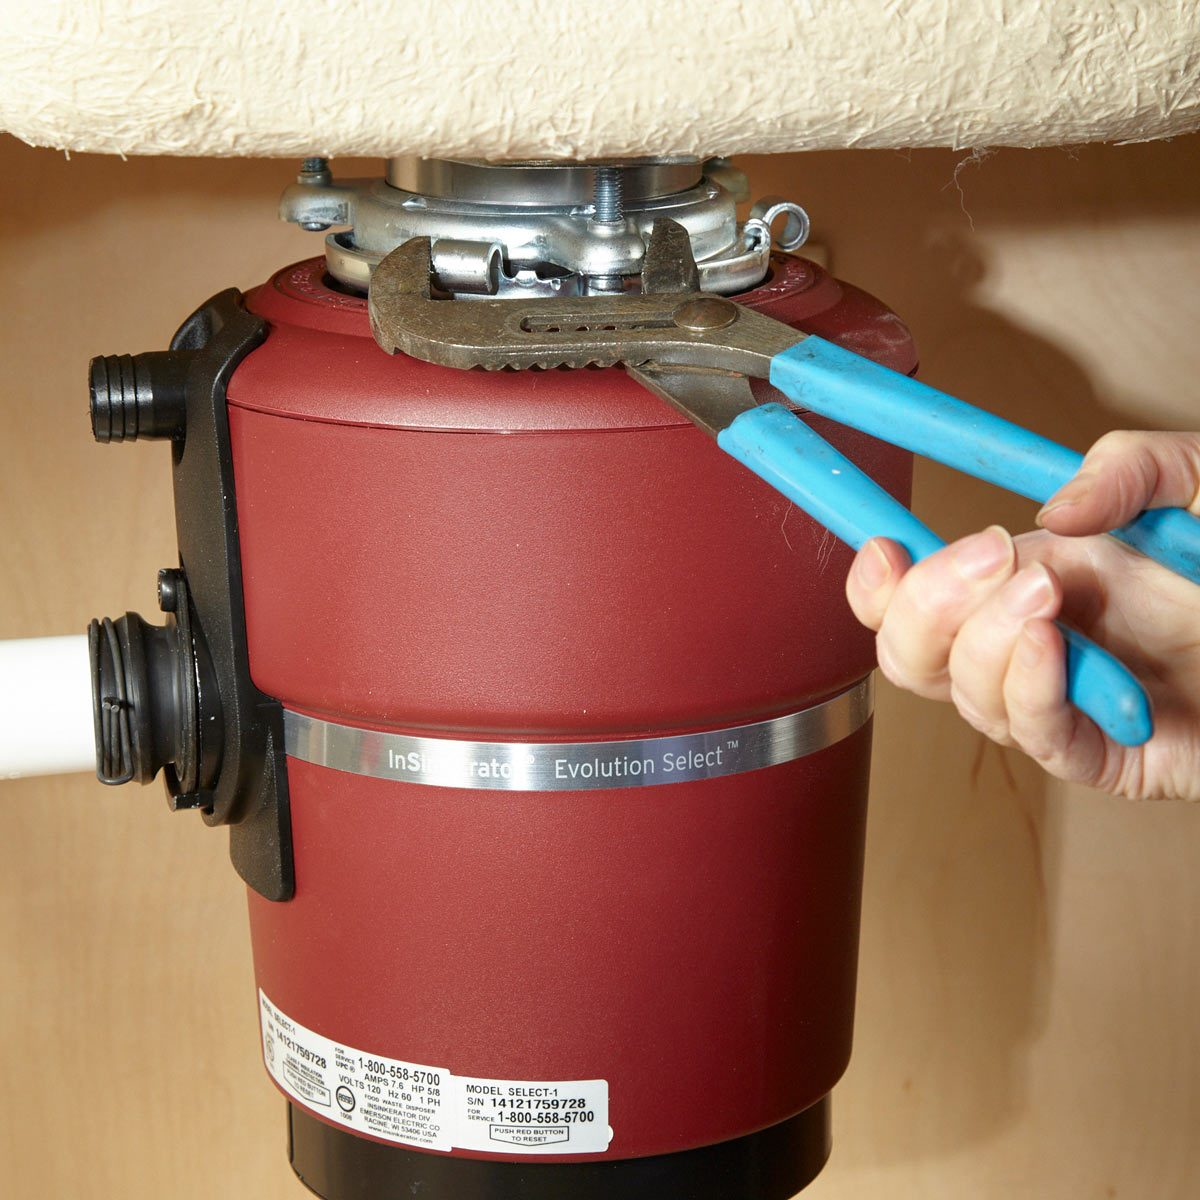 hight resolution of when you hang the new disposal rotating the lower mounting ring tightens the seal between the disposal and the sink flange the lower ring rides up a set